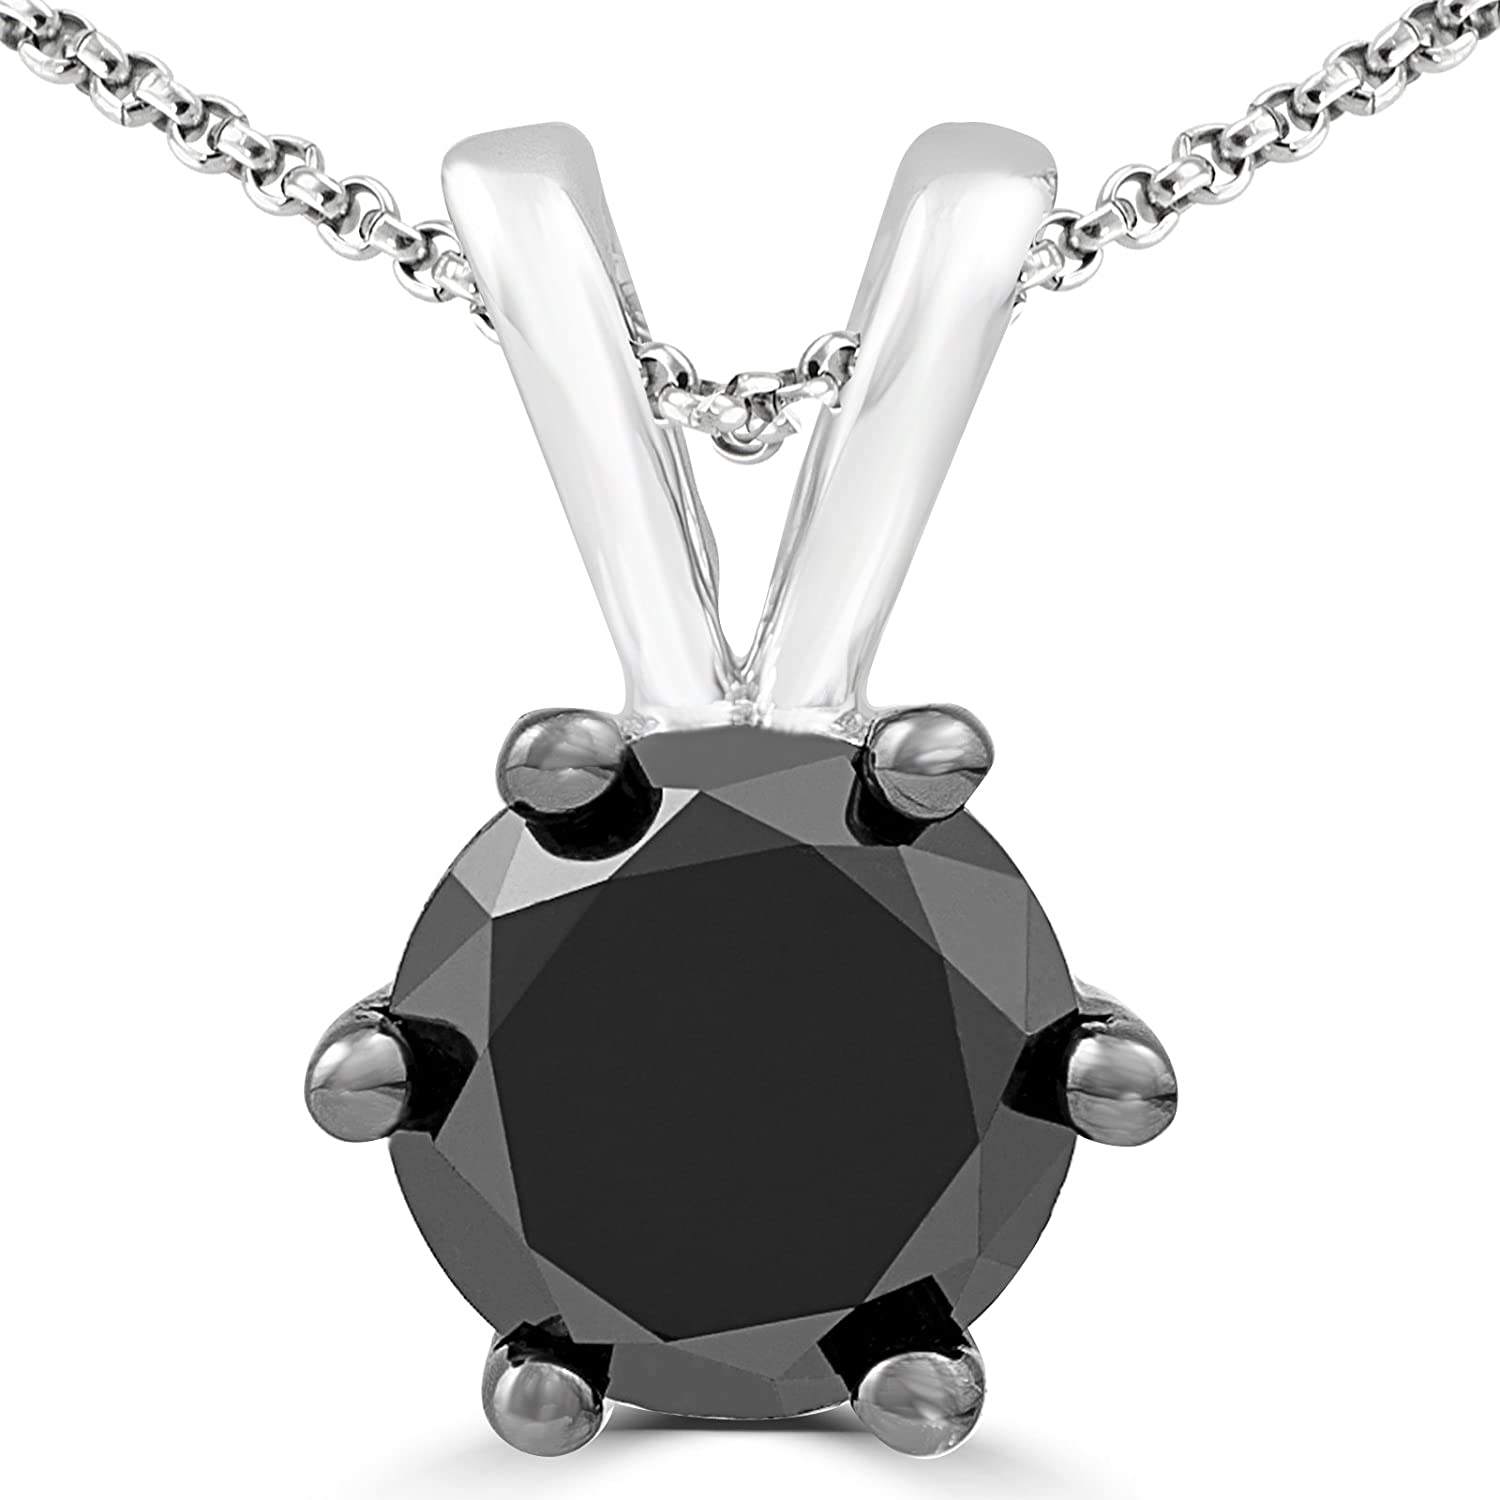 2CT Round Black Diamond 6 Prong Solitaire Pendant 14K White Gold Chain Necklace